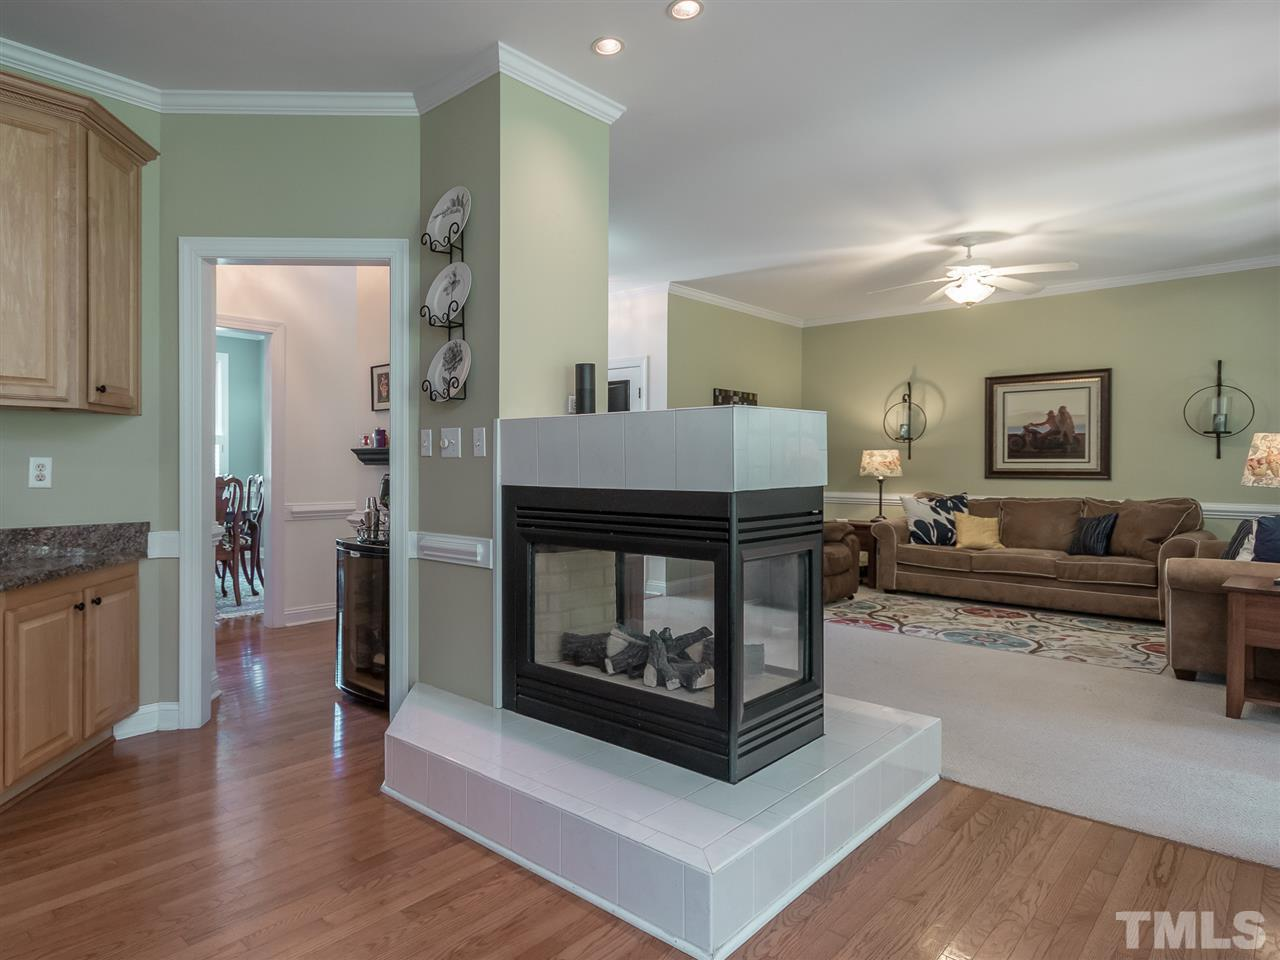 Unique gas fireplace provides the extra ambiance to warm the heart of the home.